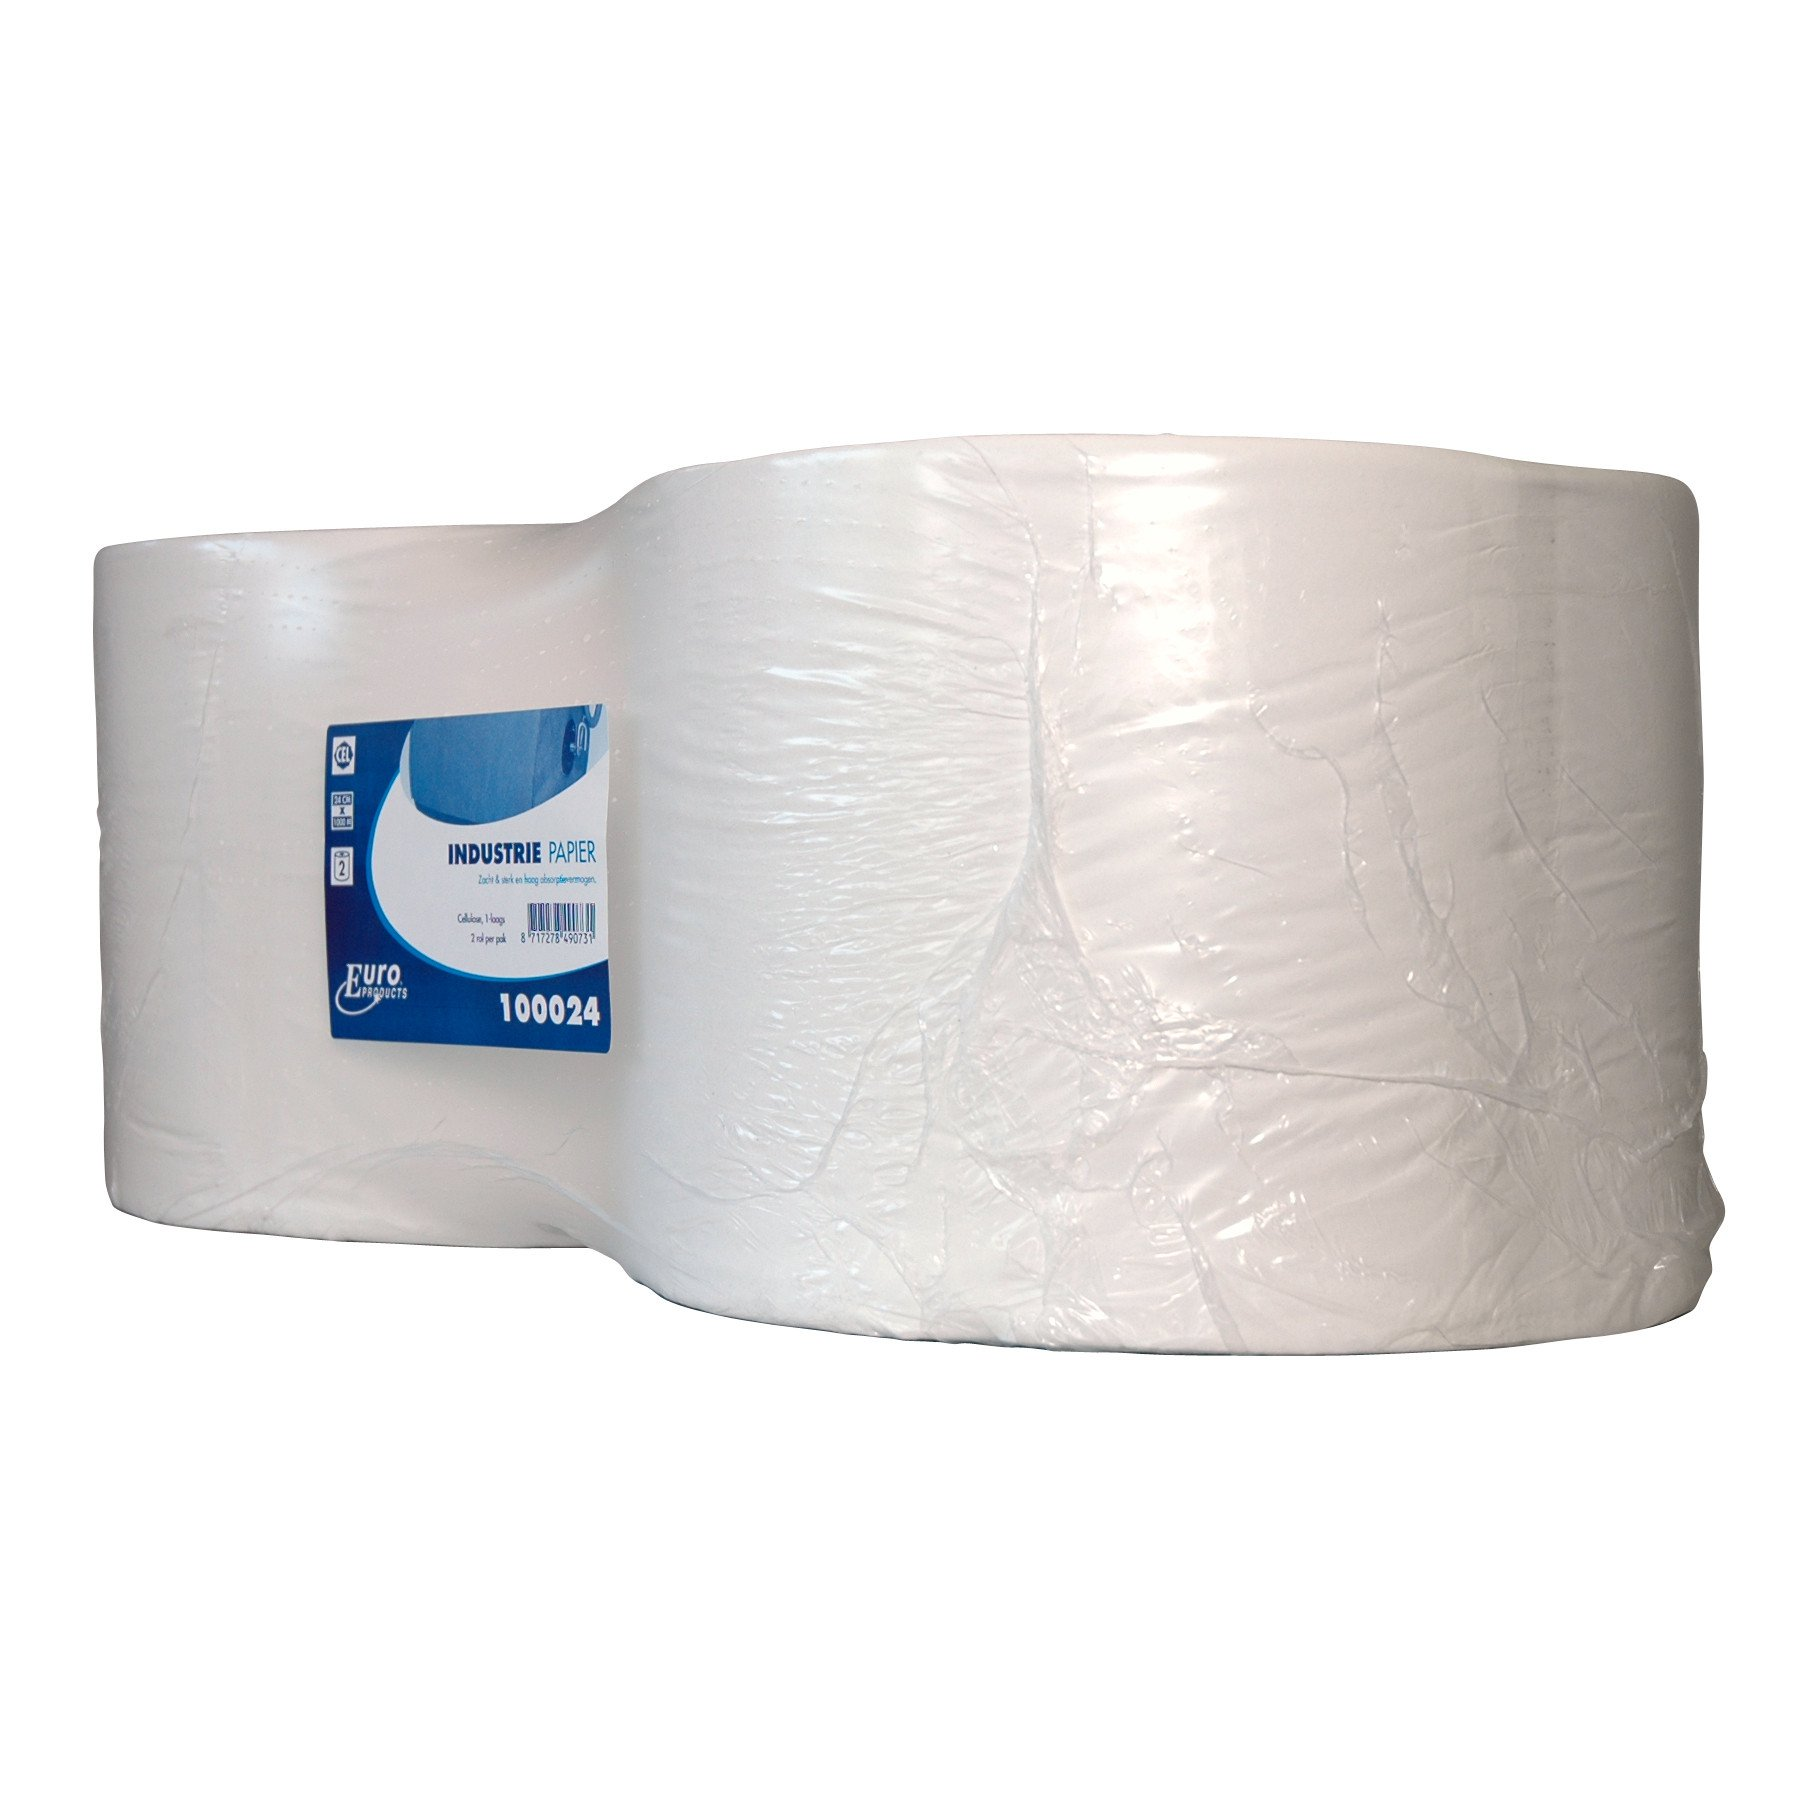 Euro Products | Industriepapier | Cellulose 1-laags | 2 x 1000 meter